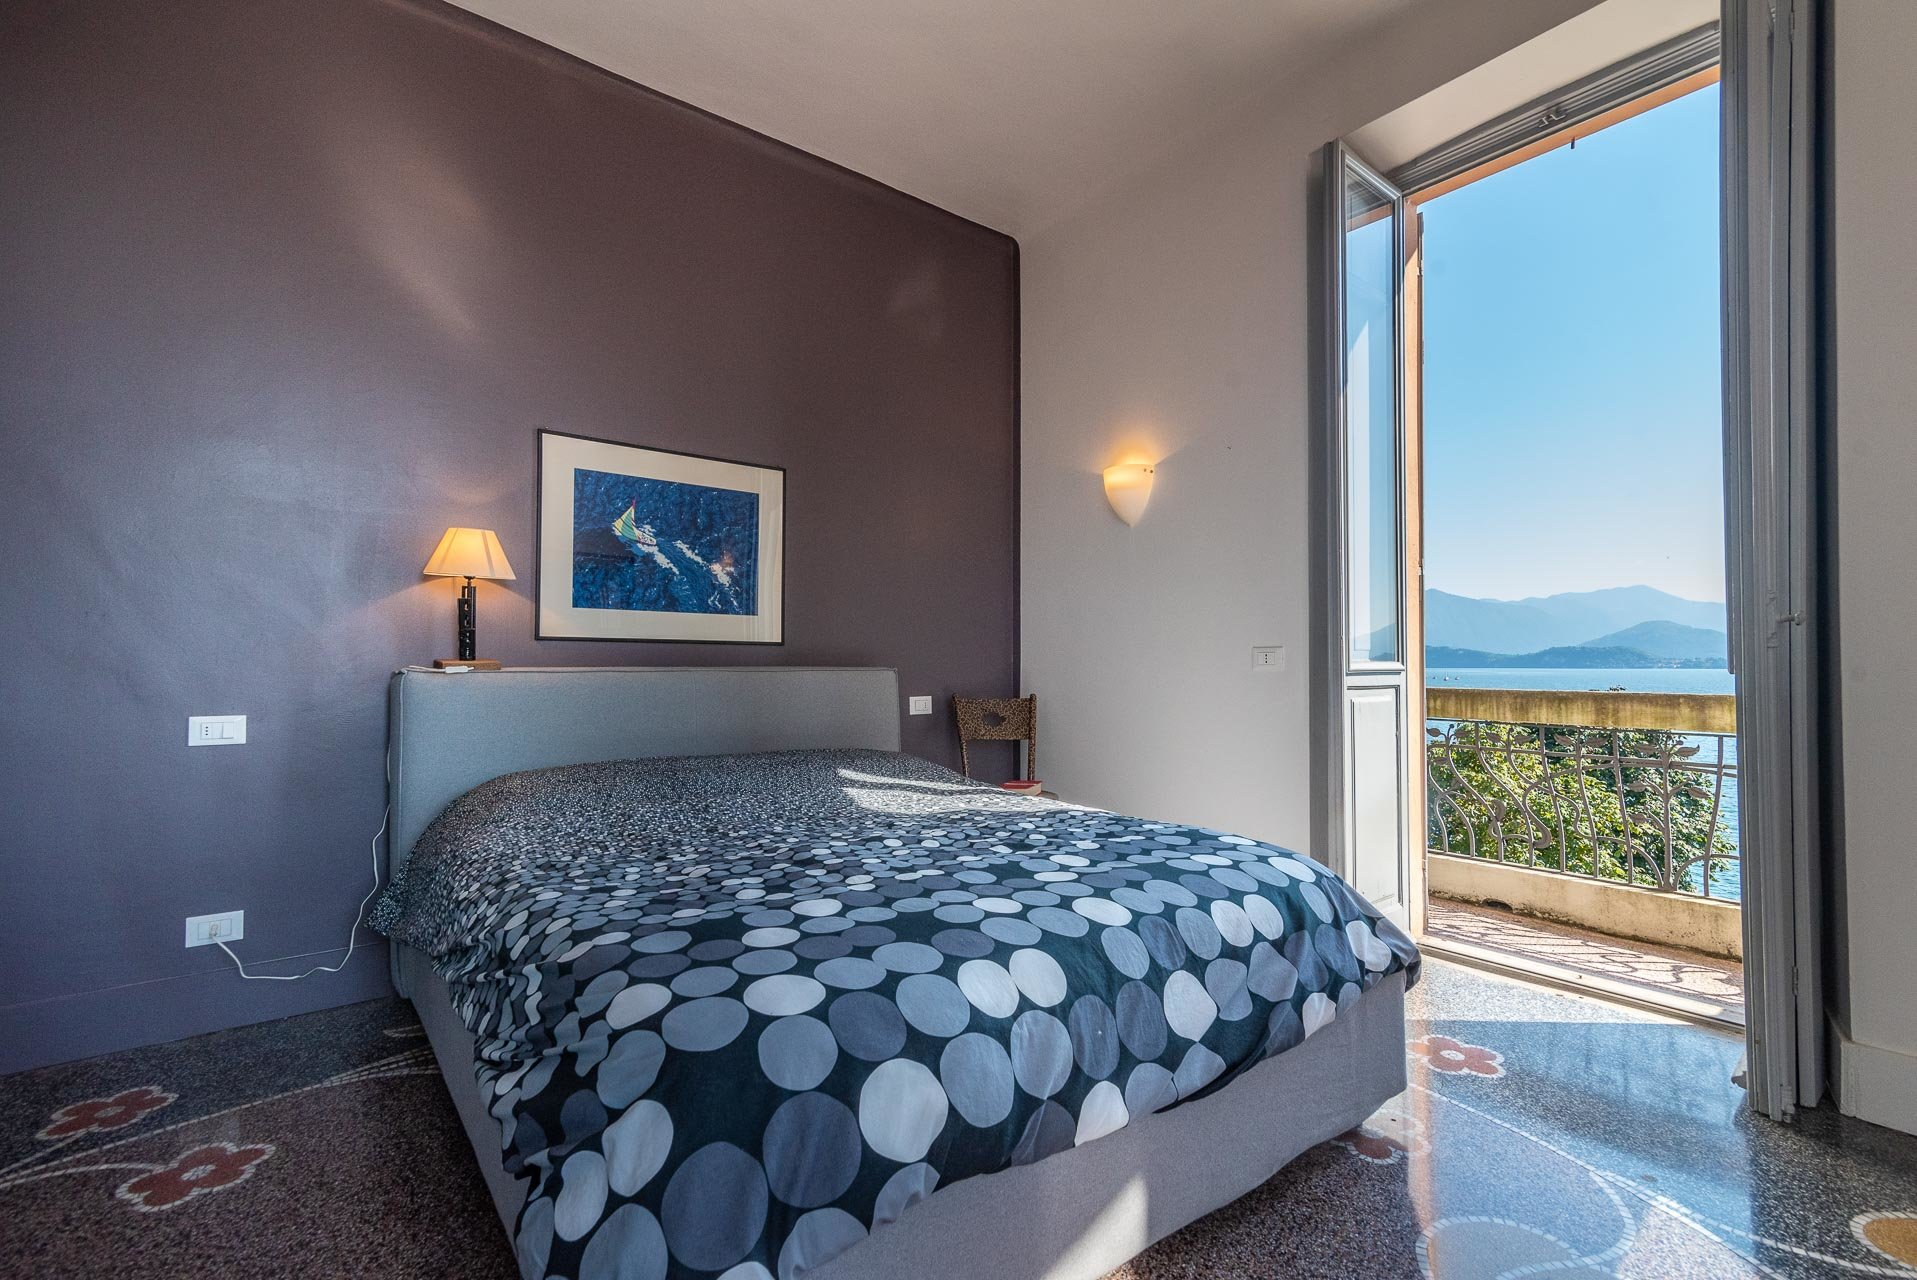 Lesa, apartment for sale on the lakefront - lake view bedroom